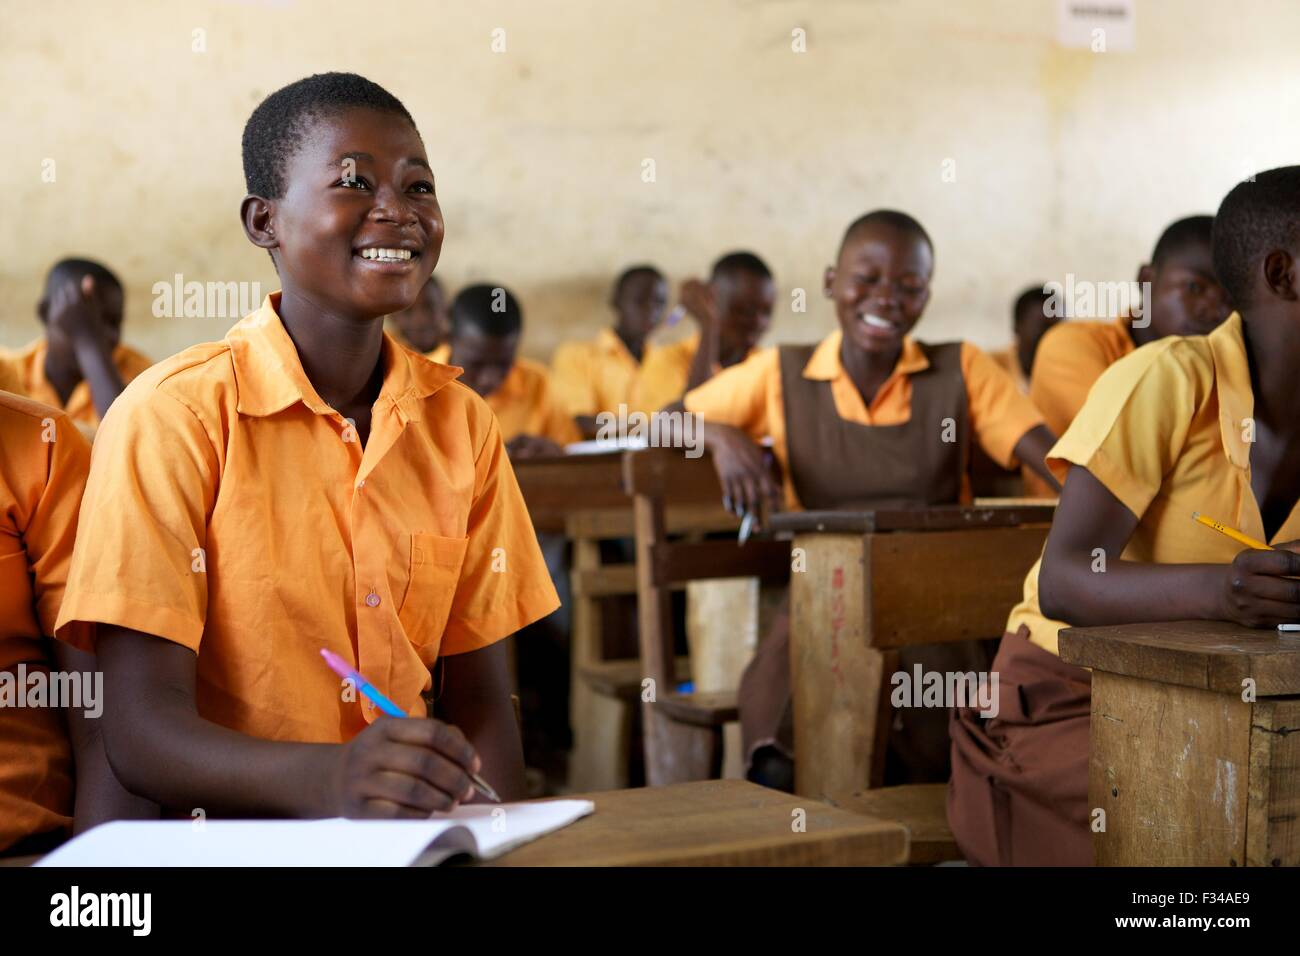 A student at a school in Talensi Nabdam, Ghana Africa. - Stock Image